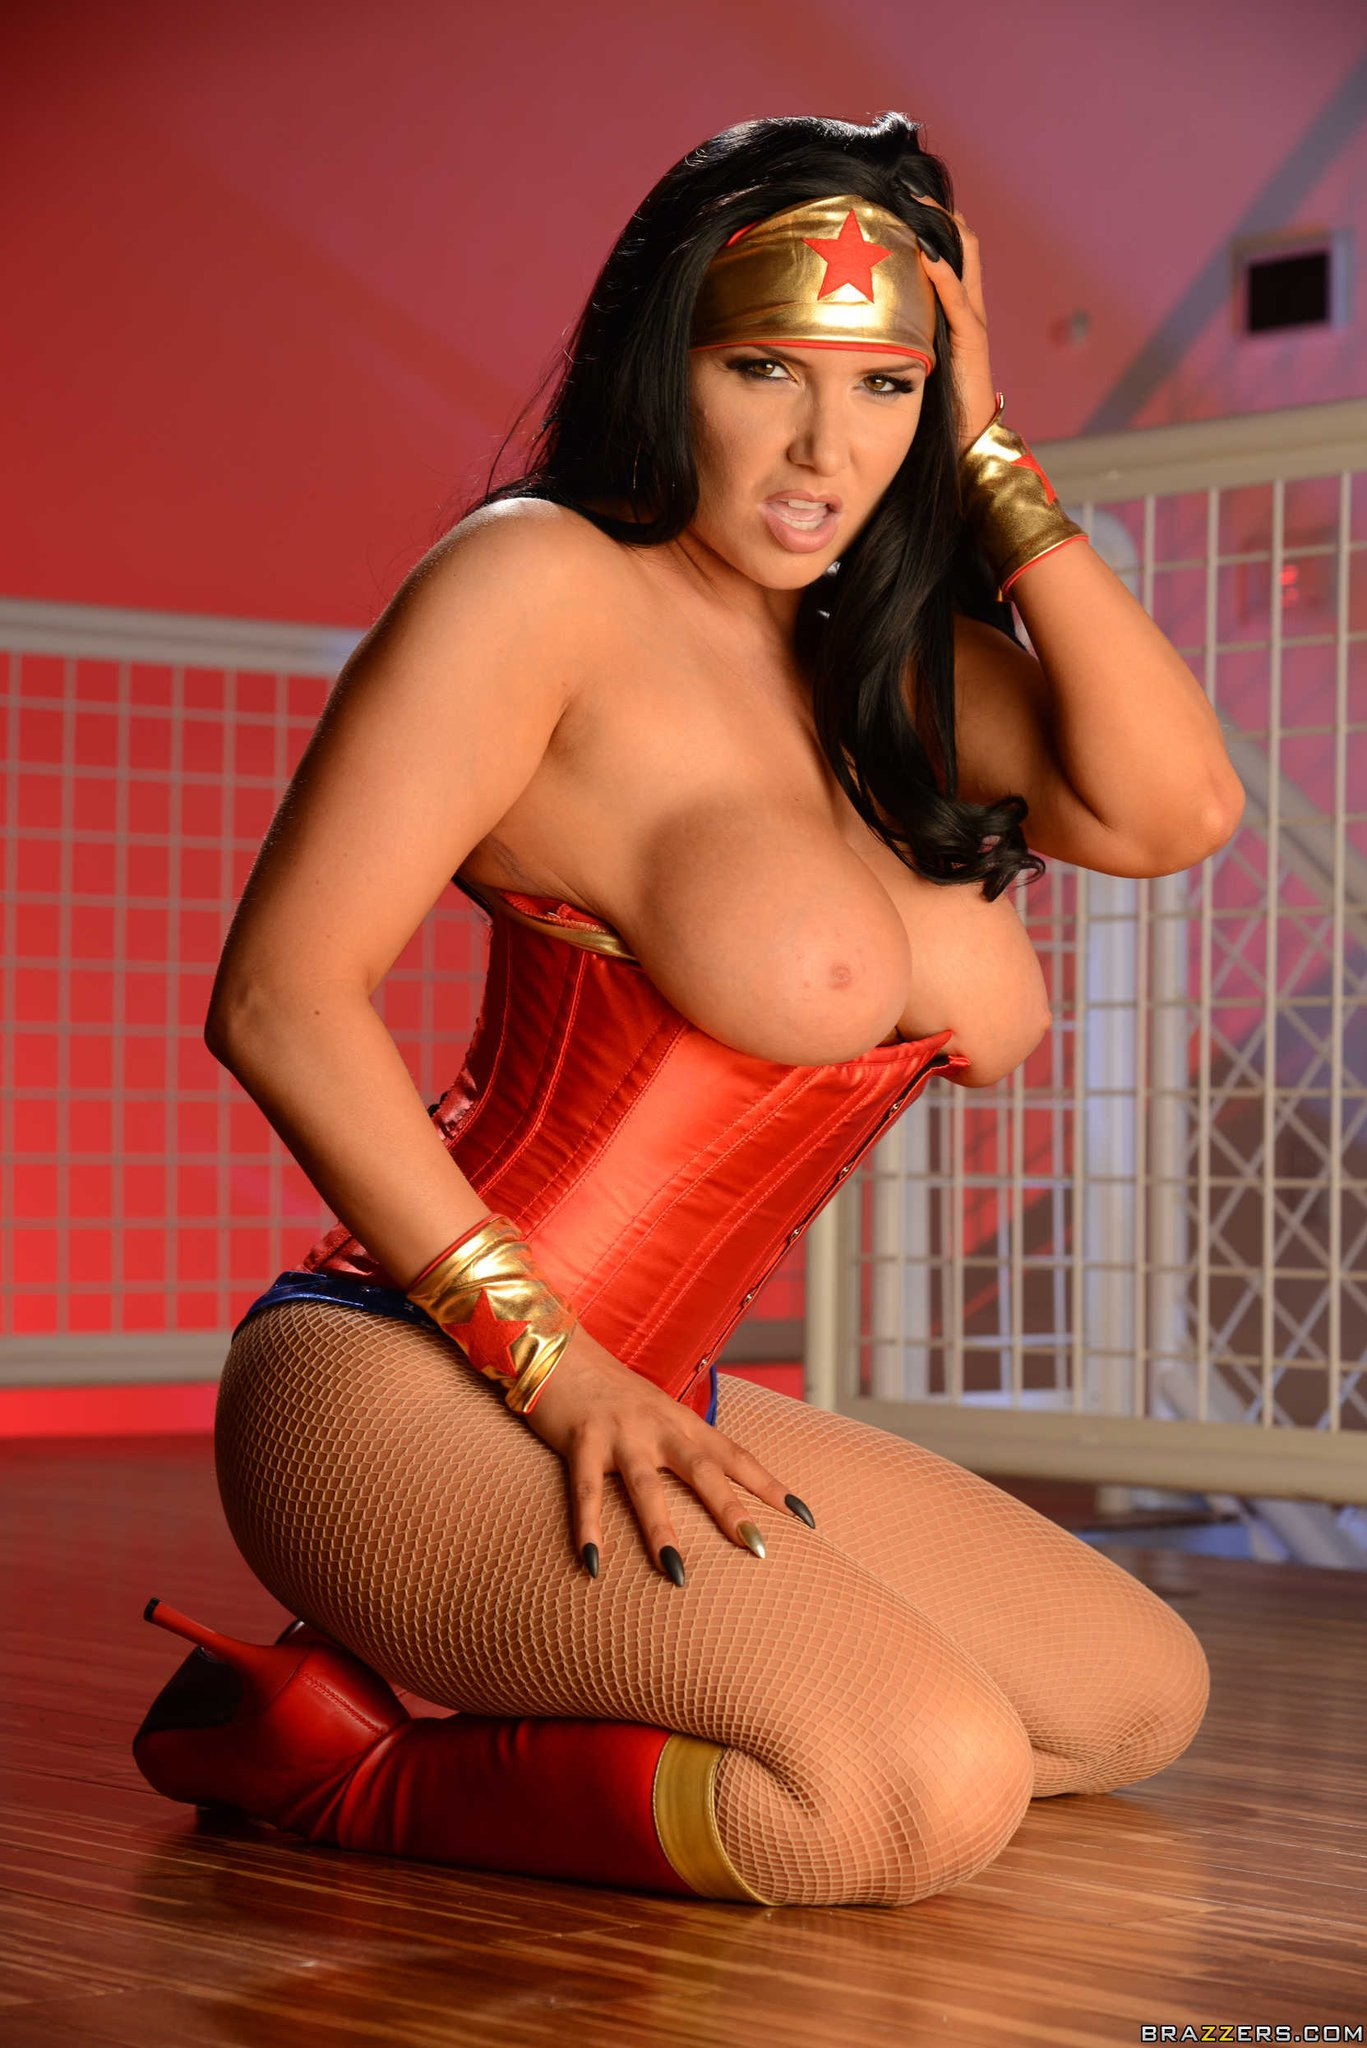 Wonder woman xxx pictures-6605